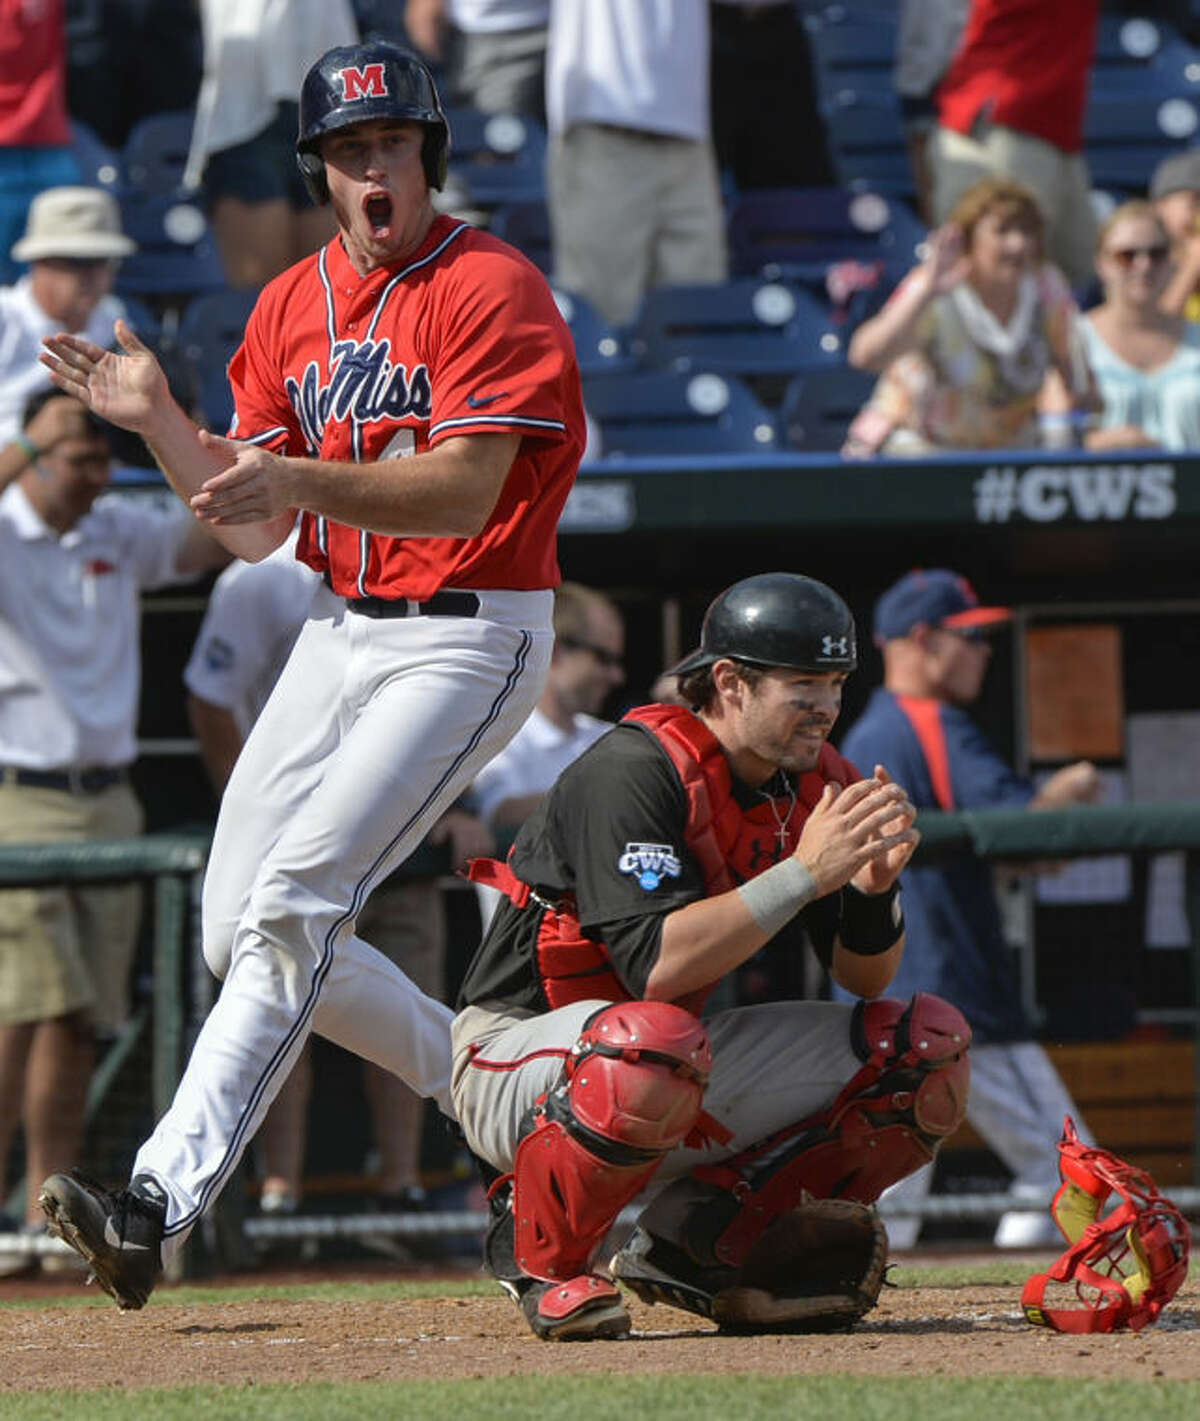 Mississippi's Aaron Greenwood, who scored the winning run against Texas Tech on a single by John Gatlin, celebrates left, as Texas Tech catcher Hunter Redman (5) crouches dejected, following an NCAA baseball College World Series elimination game in Omaha, Neb., Tuesday, June 17, 2014. (AP Photo/Ted Kirk)